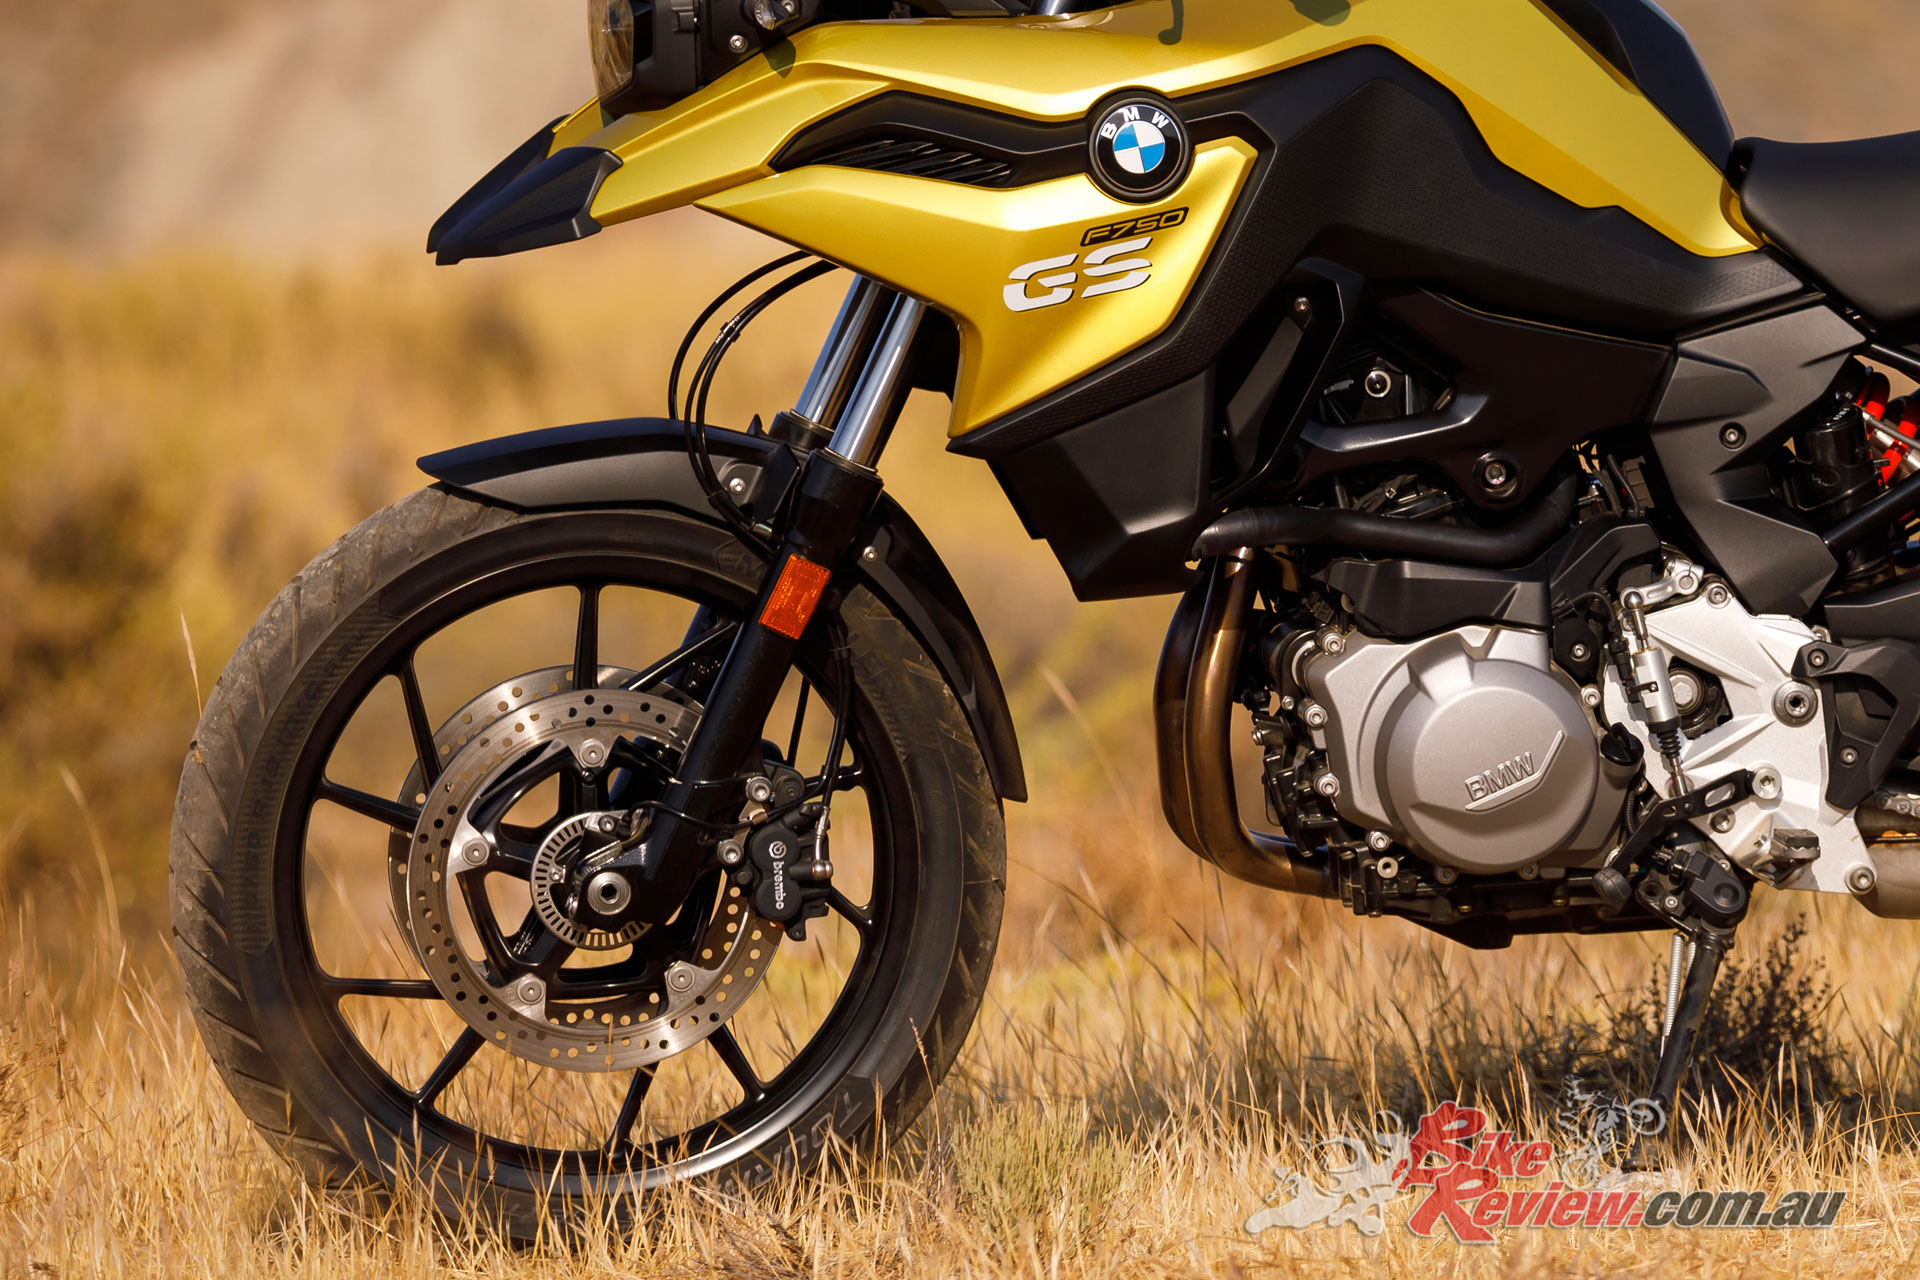 Braking performance on the tar is adequate, but delivers all you'd want on the dirt